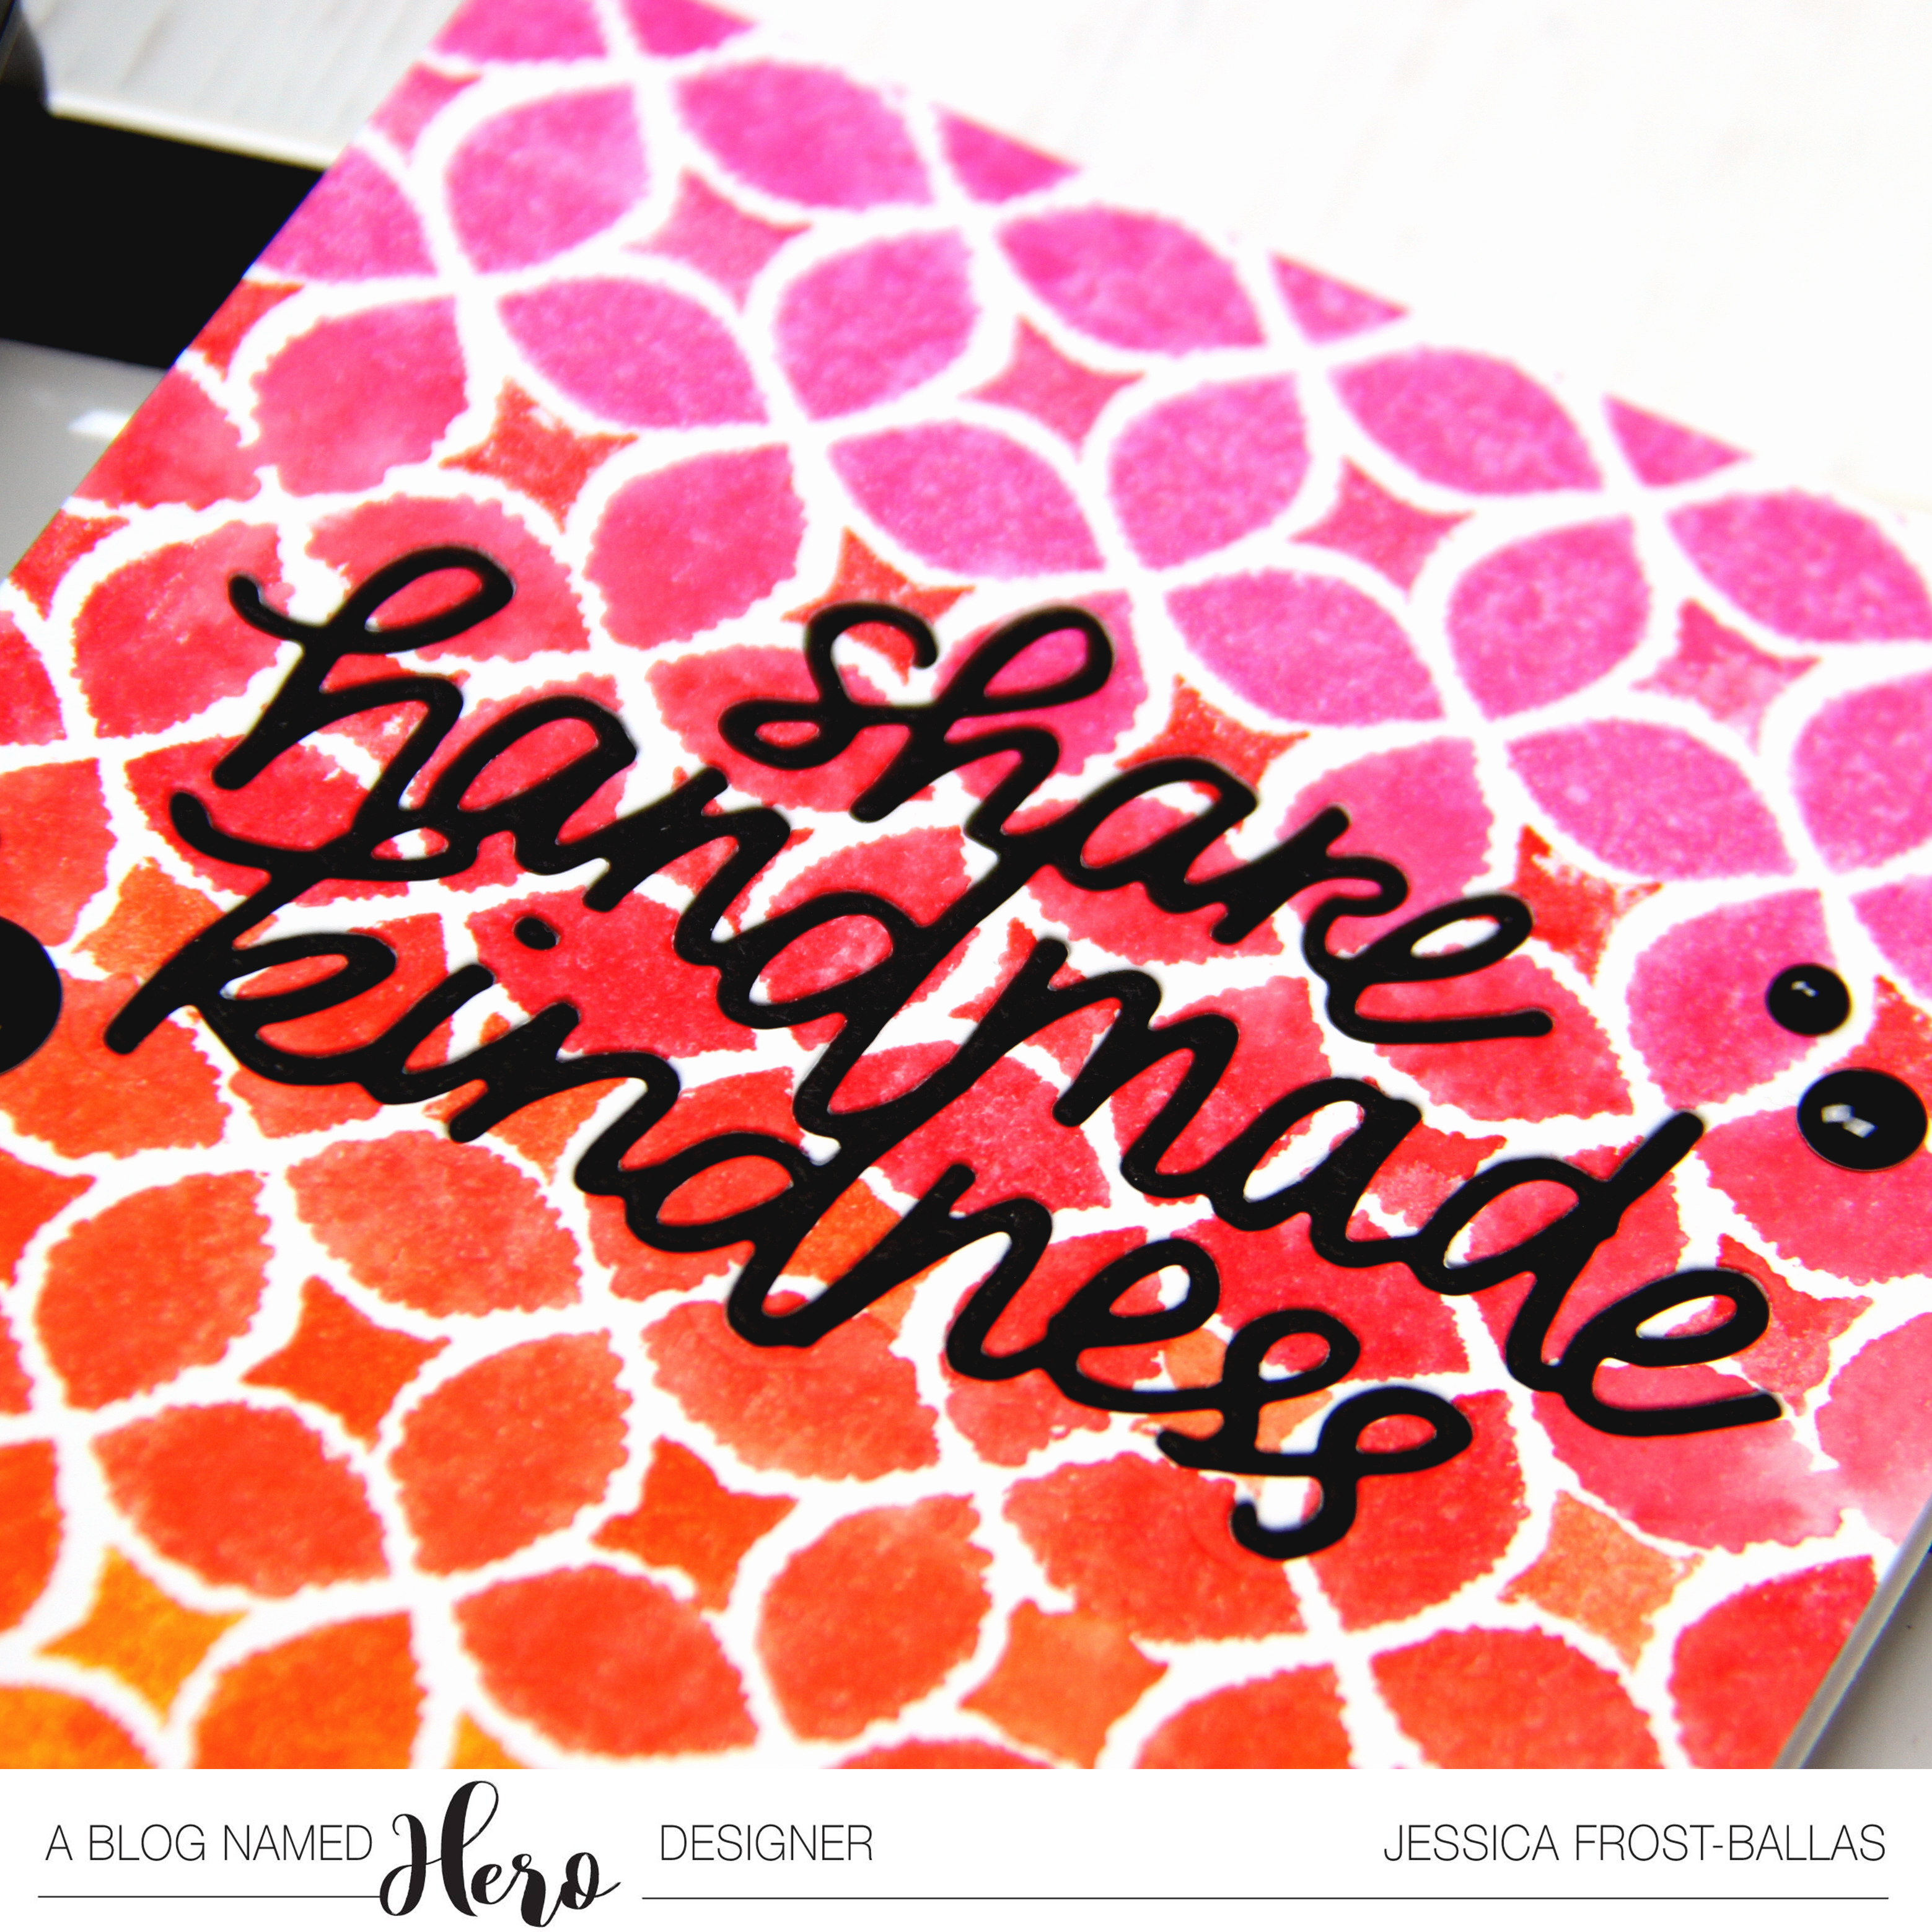 Share Handmade Kindness by Jessica Frost-Ballas for A Blog Named Hero